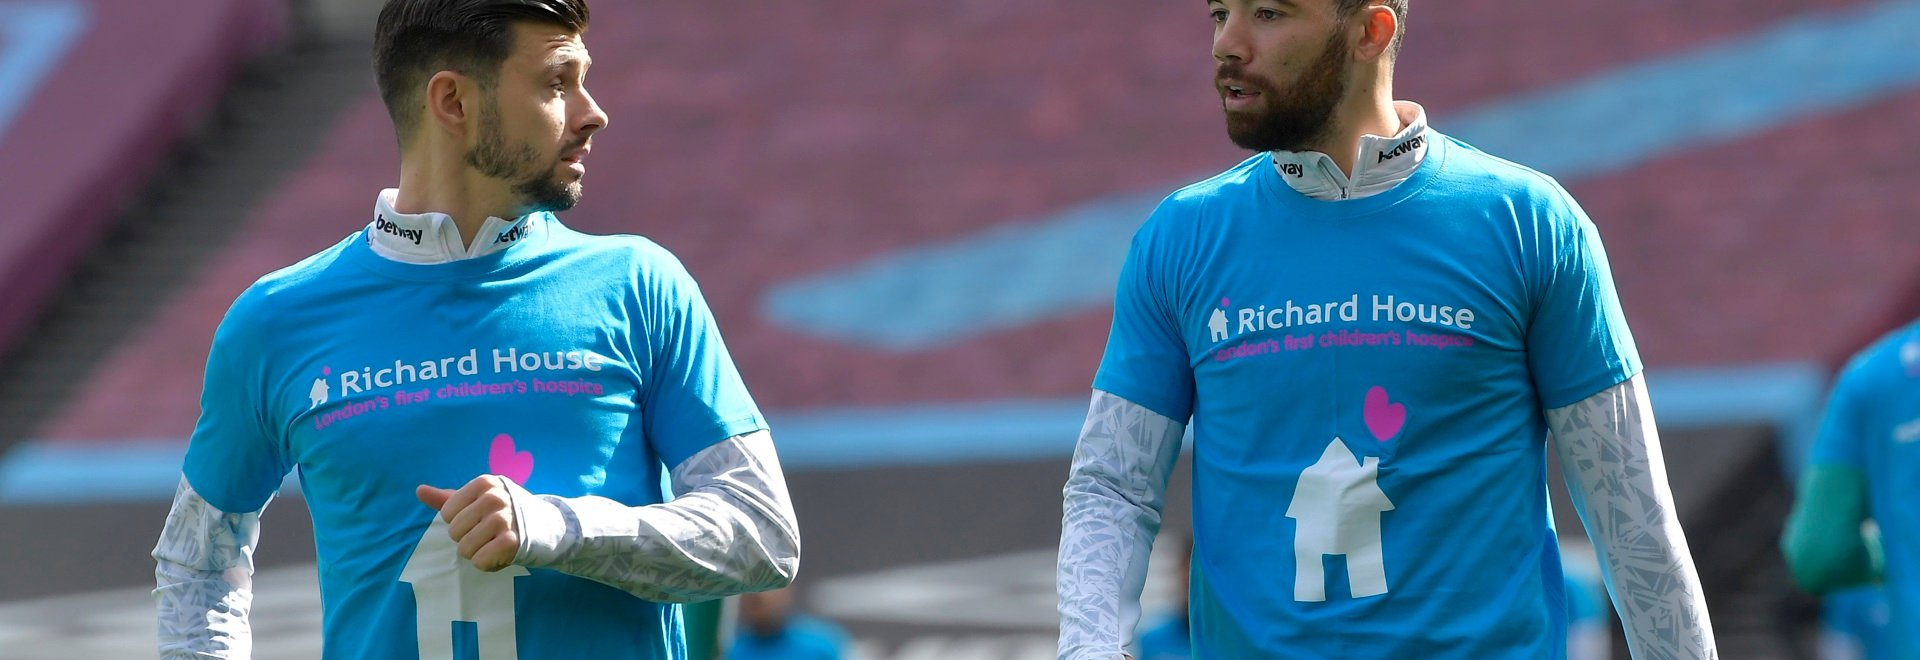 West Ham players sported Richard House  t-shirts in the club's latest show of support for the charity.